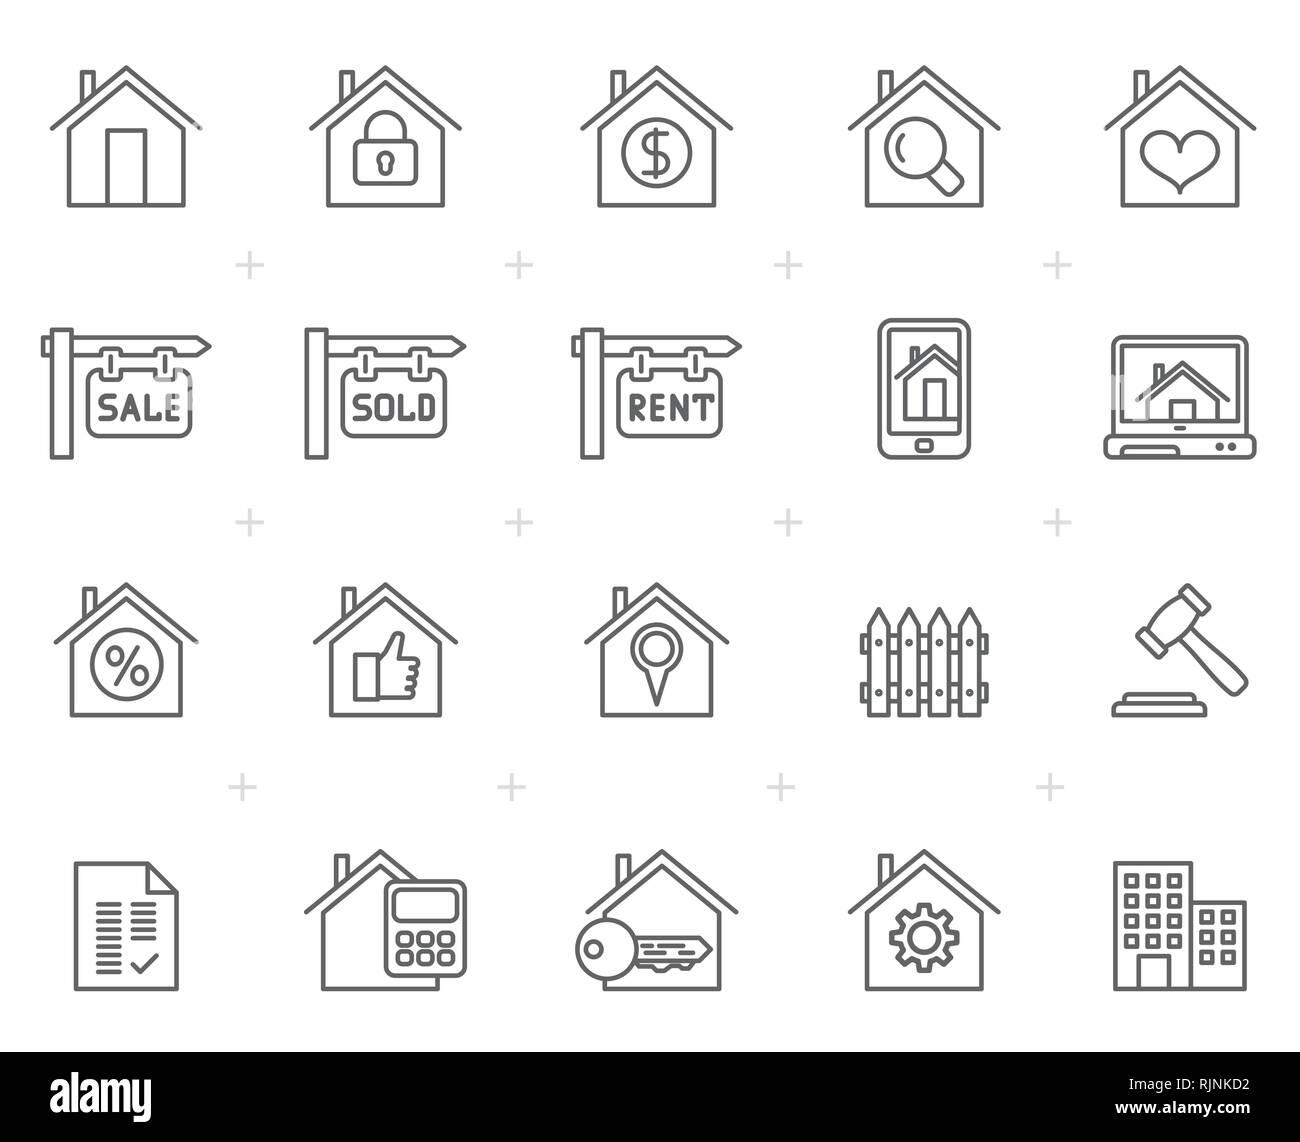 Building and Real estate icons  - vector icon set - Stock Image